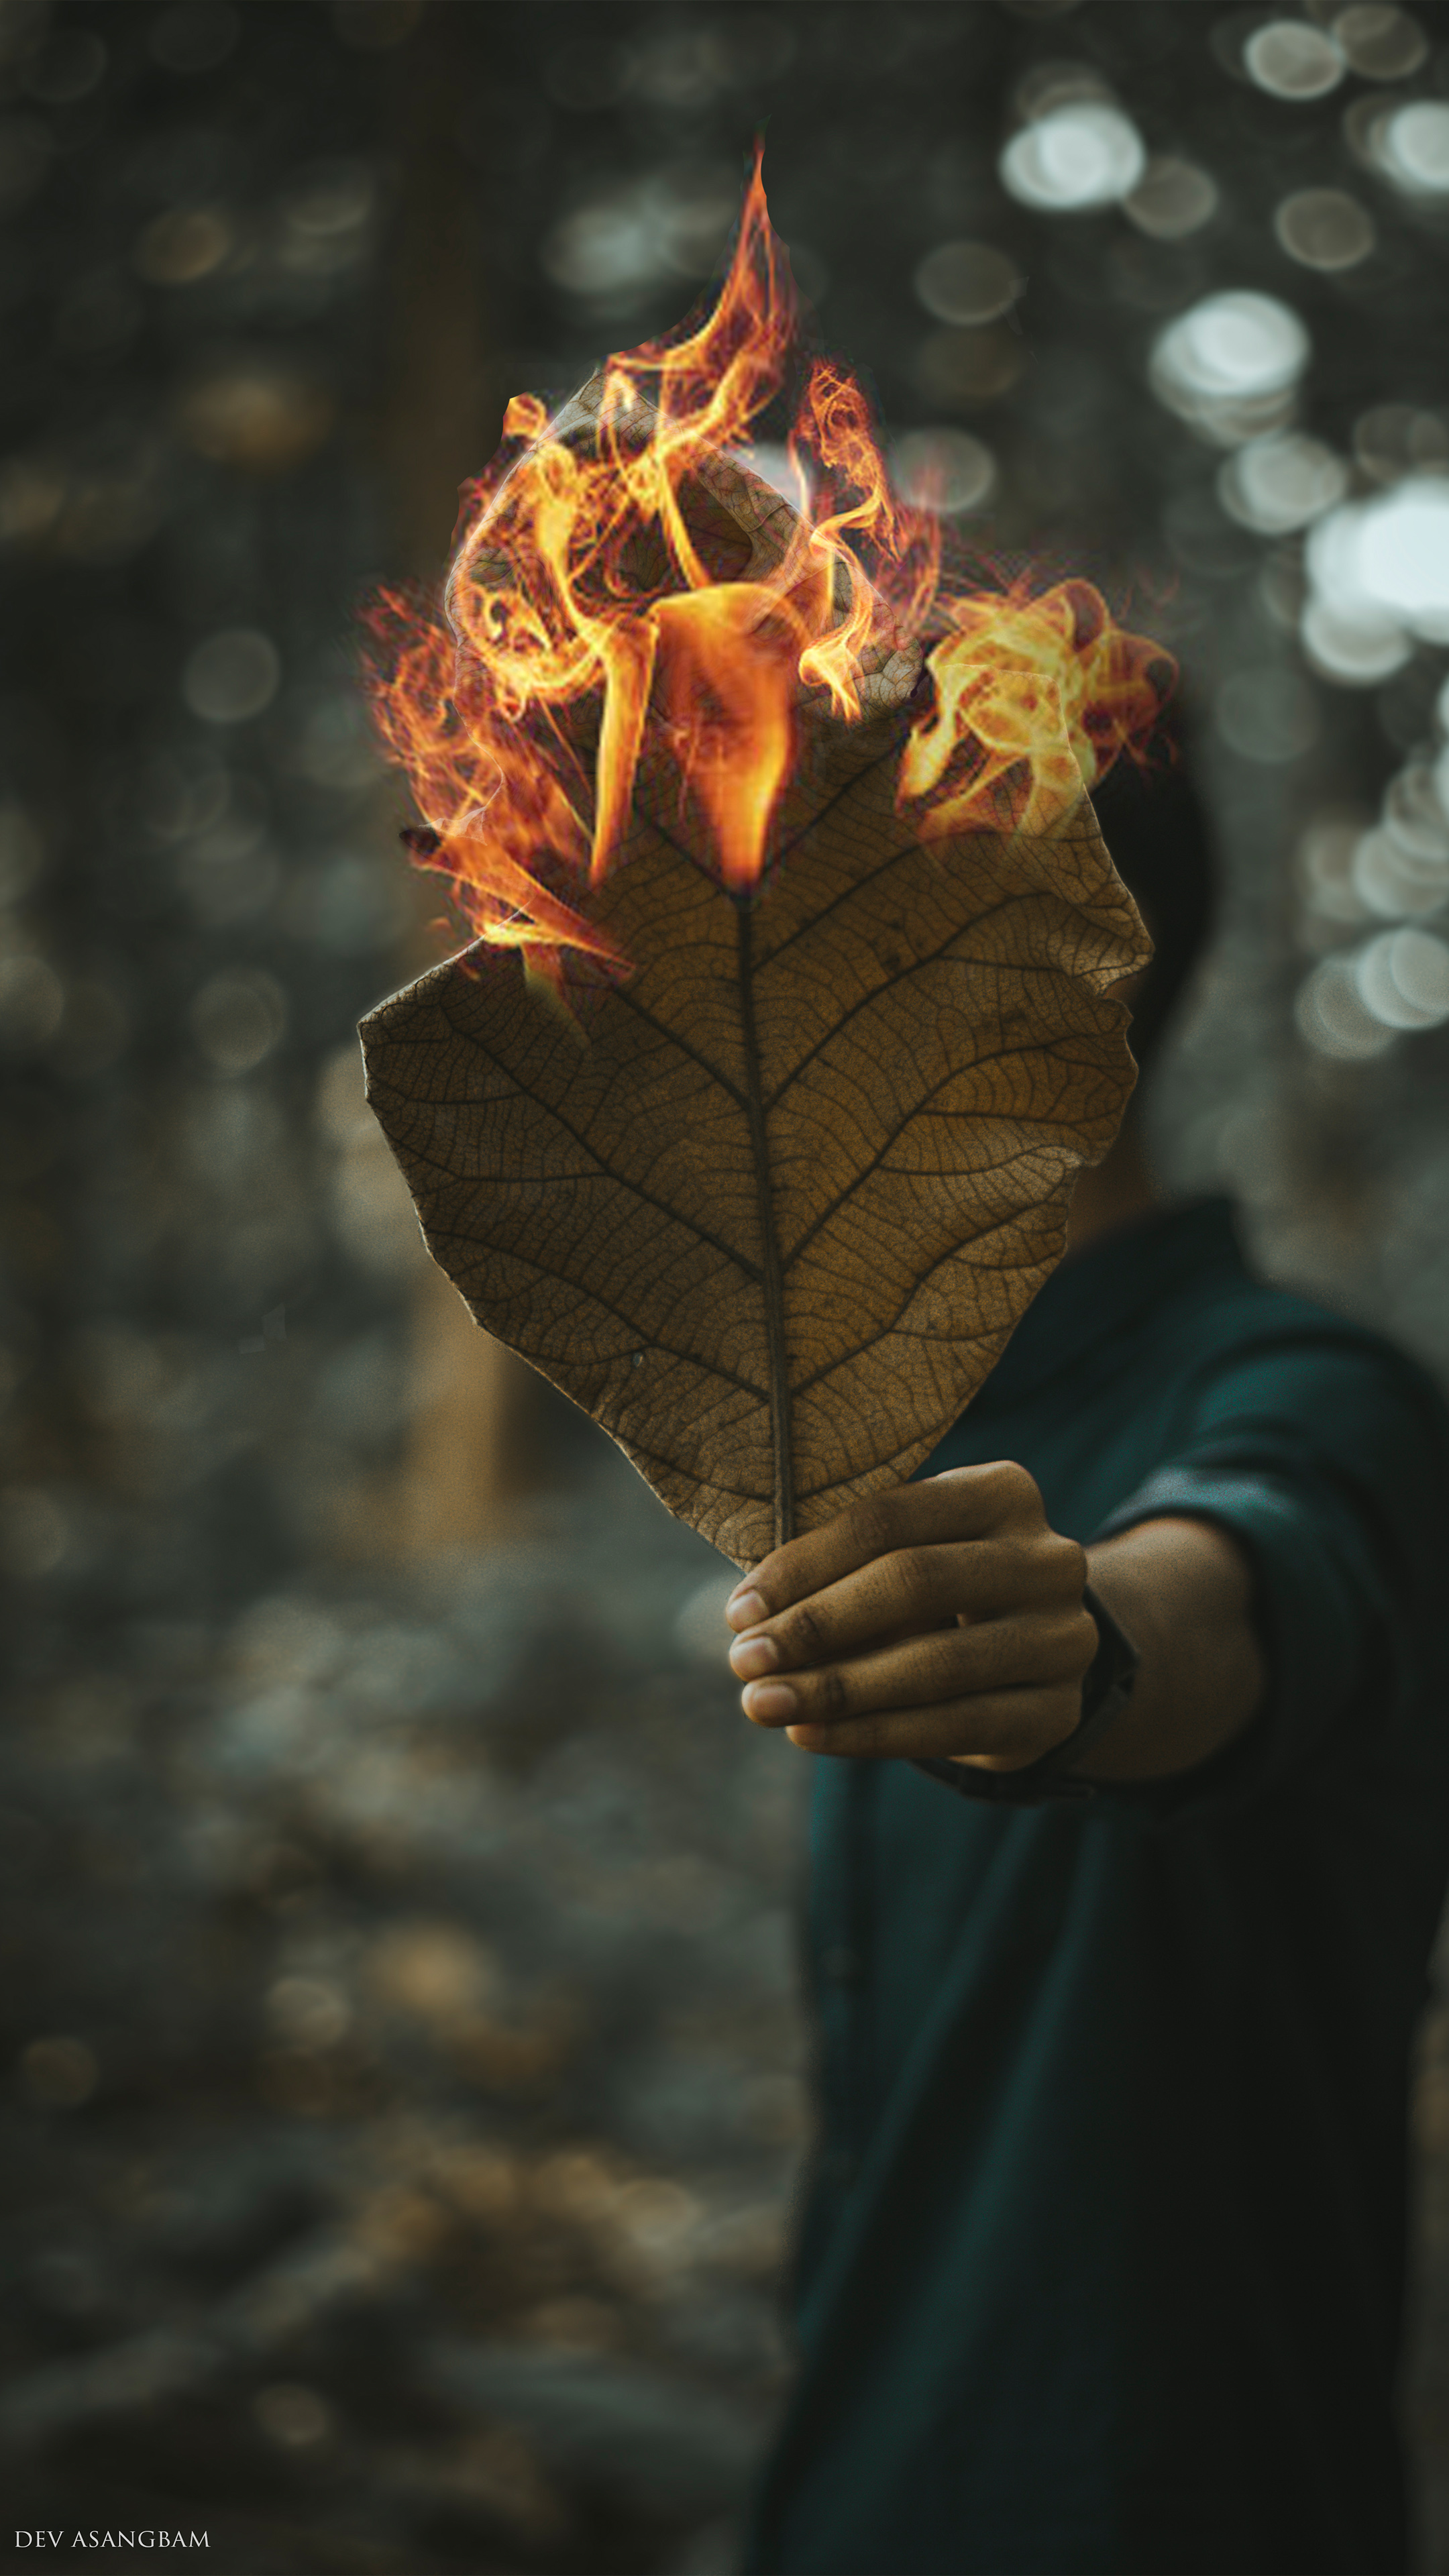 Man Leaves Fire Photography Free 4k Ultra Hd Mobile Wallpaper